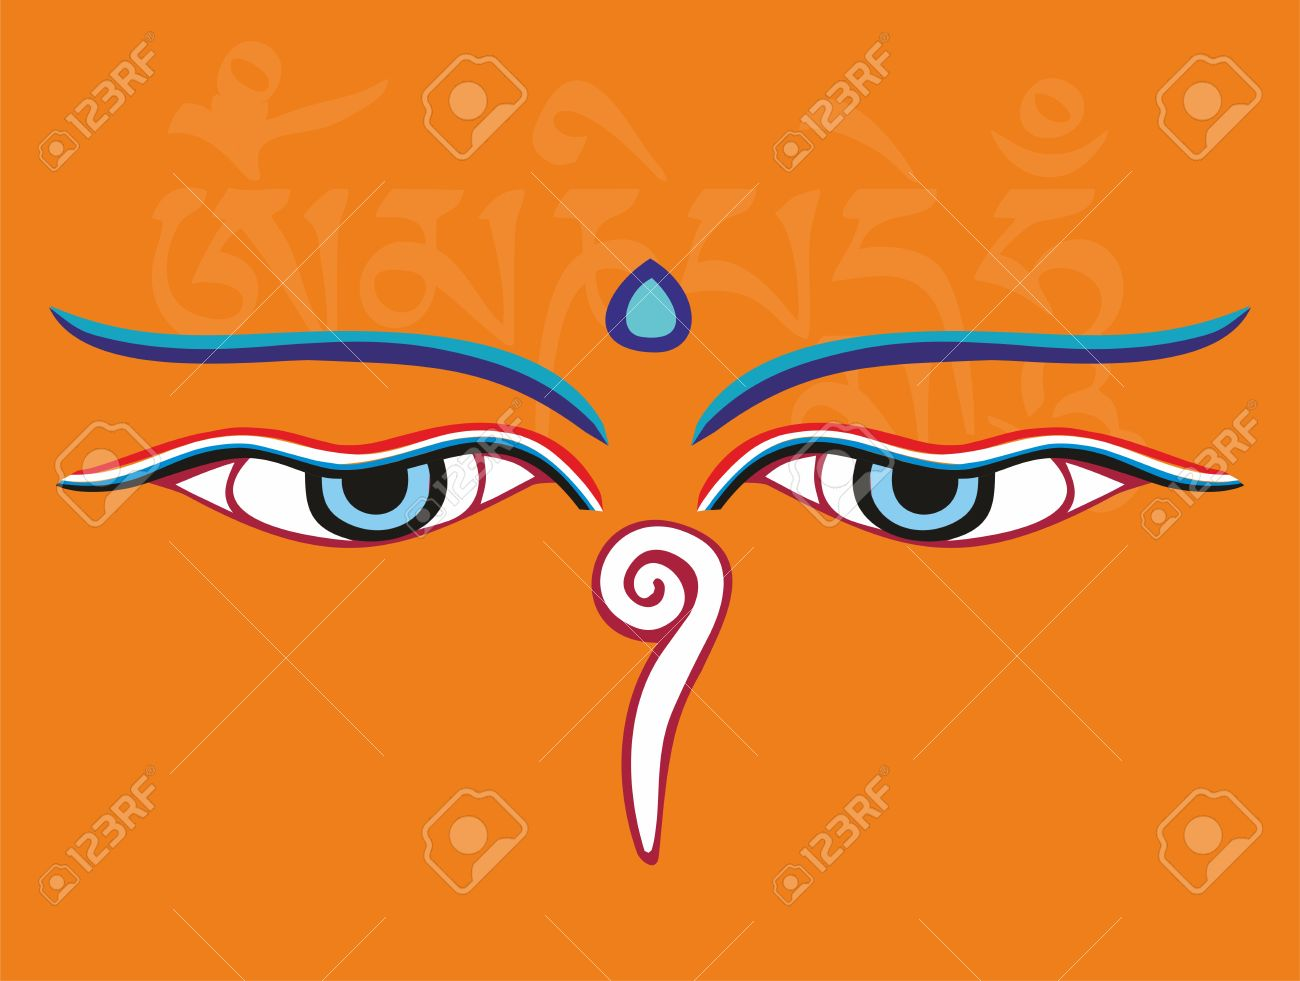 Buddha eyes or Wisdom eyes - holy asian religious symbol, vector illustration Stock Vector - 18456668